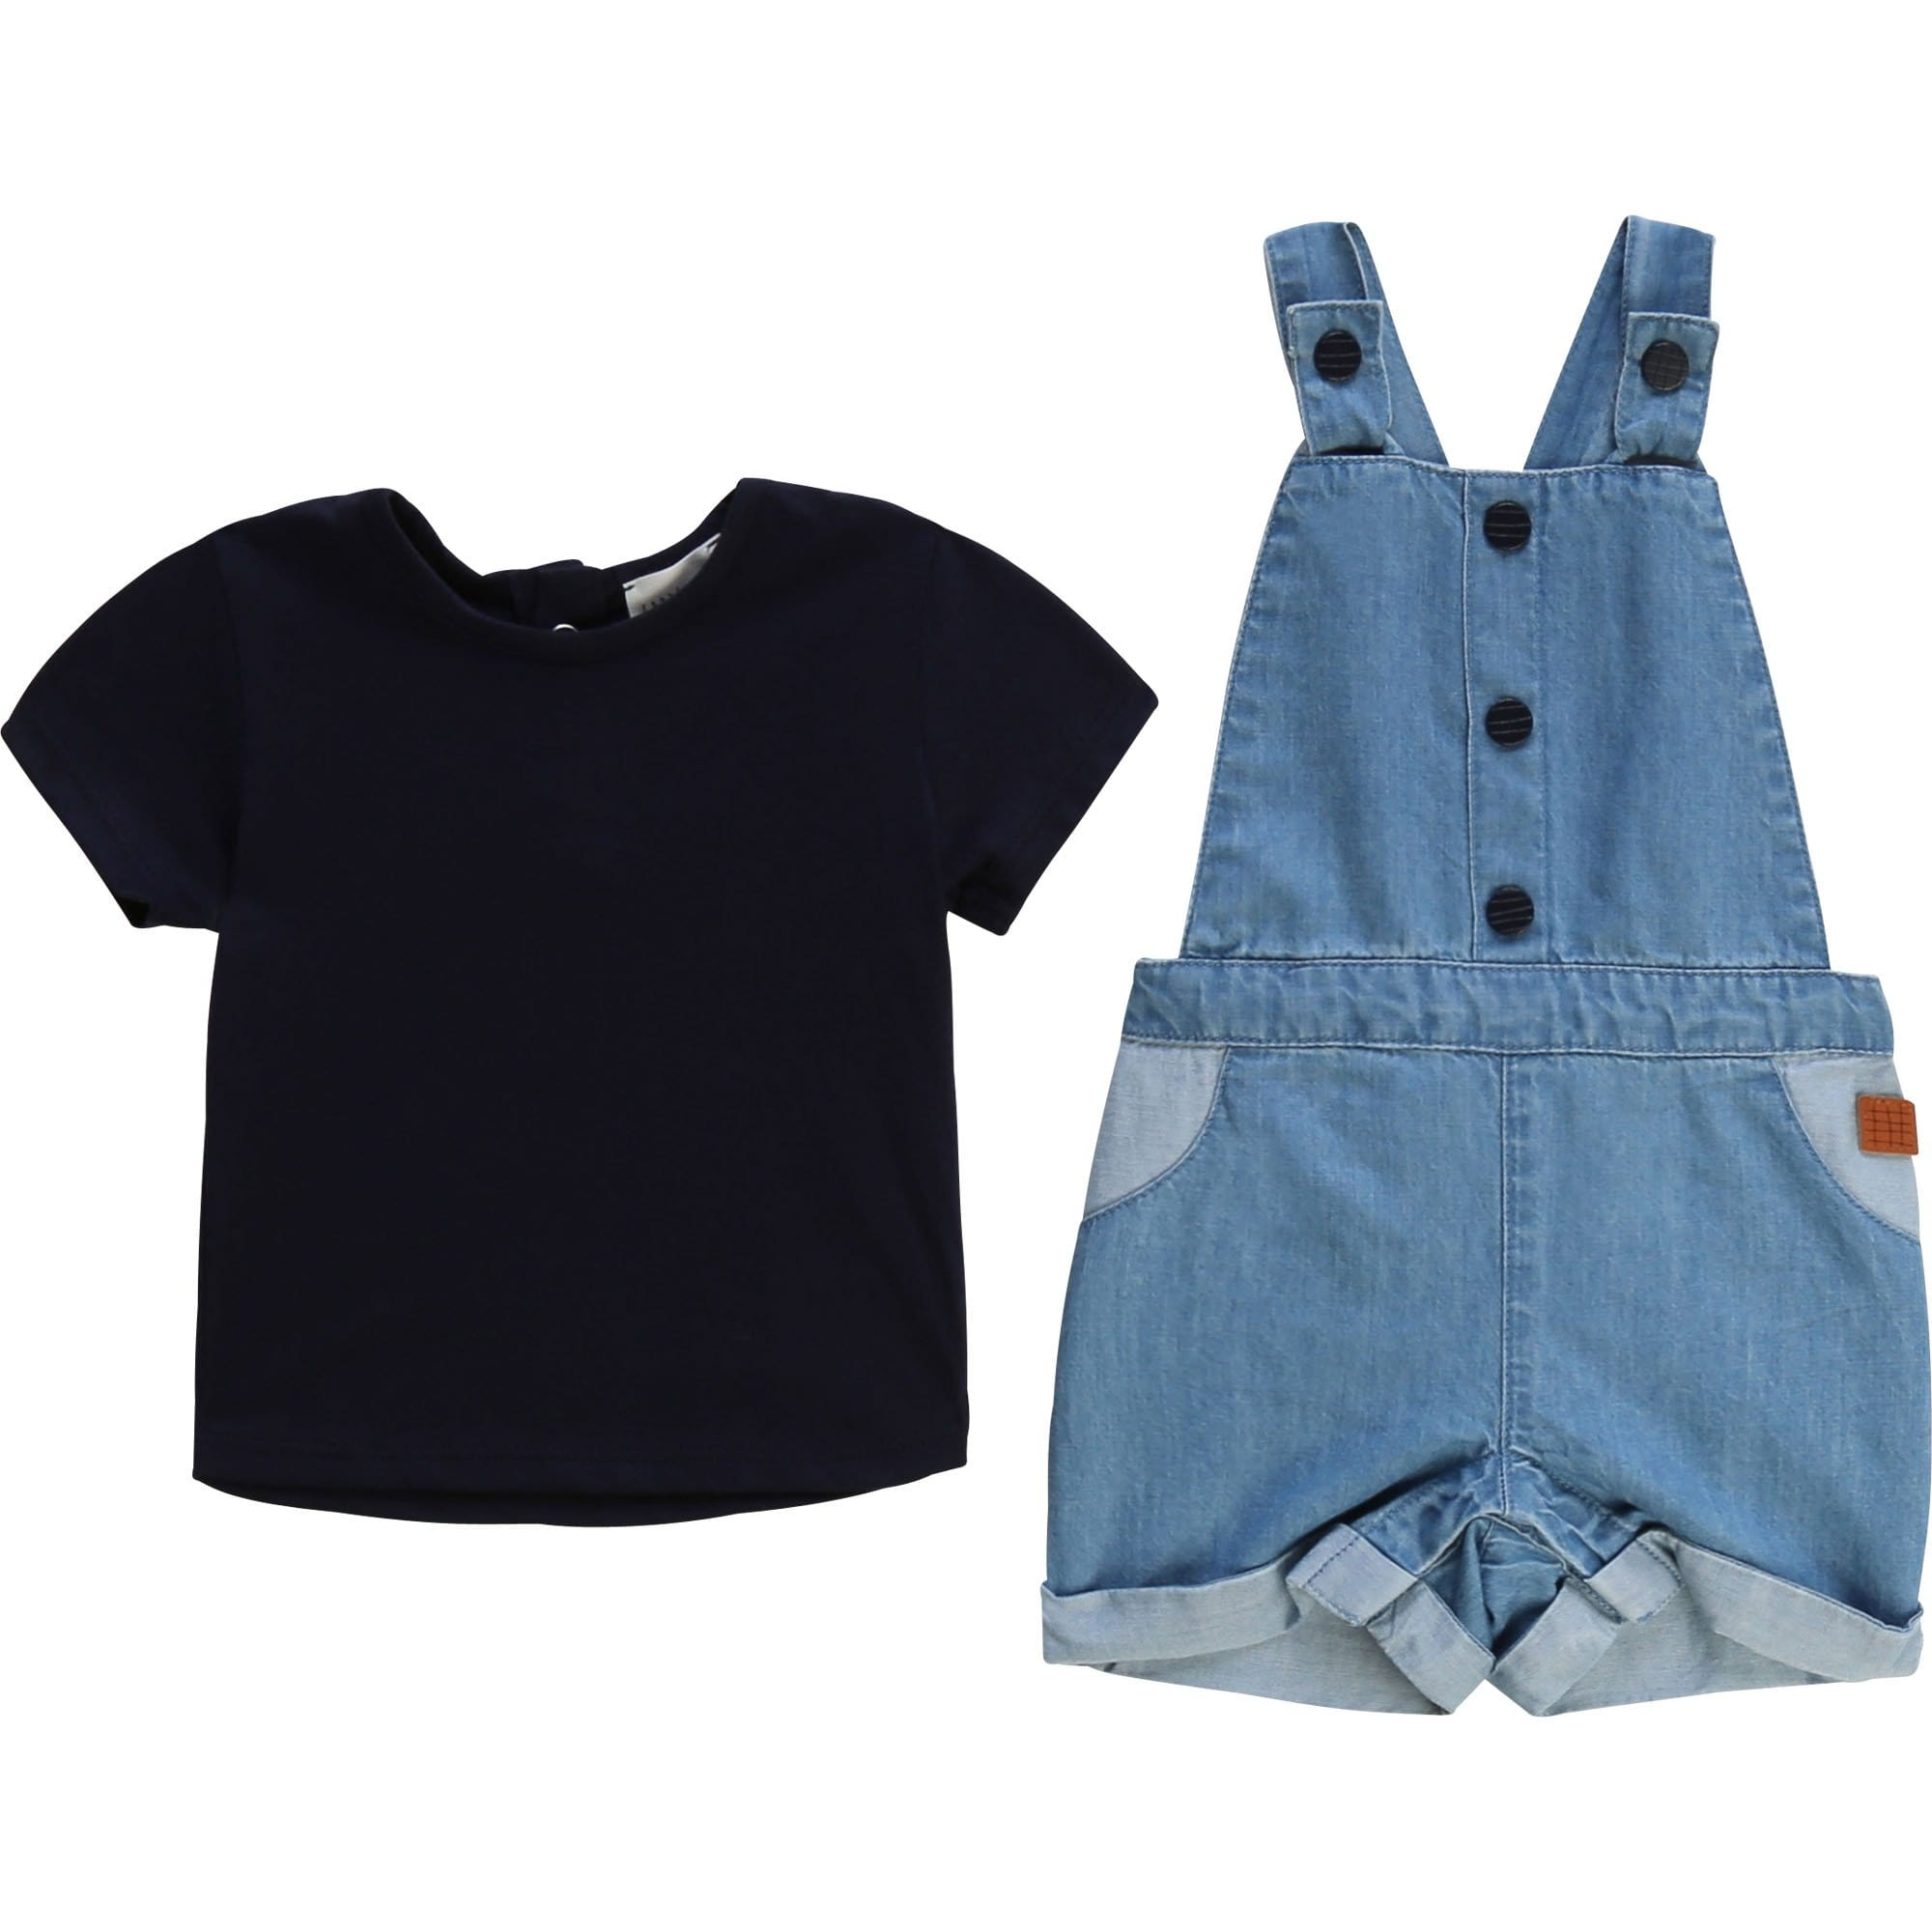 Carrement Beau T-shirt and Overall Set